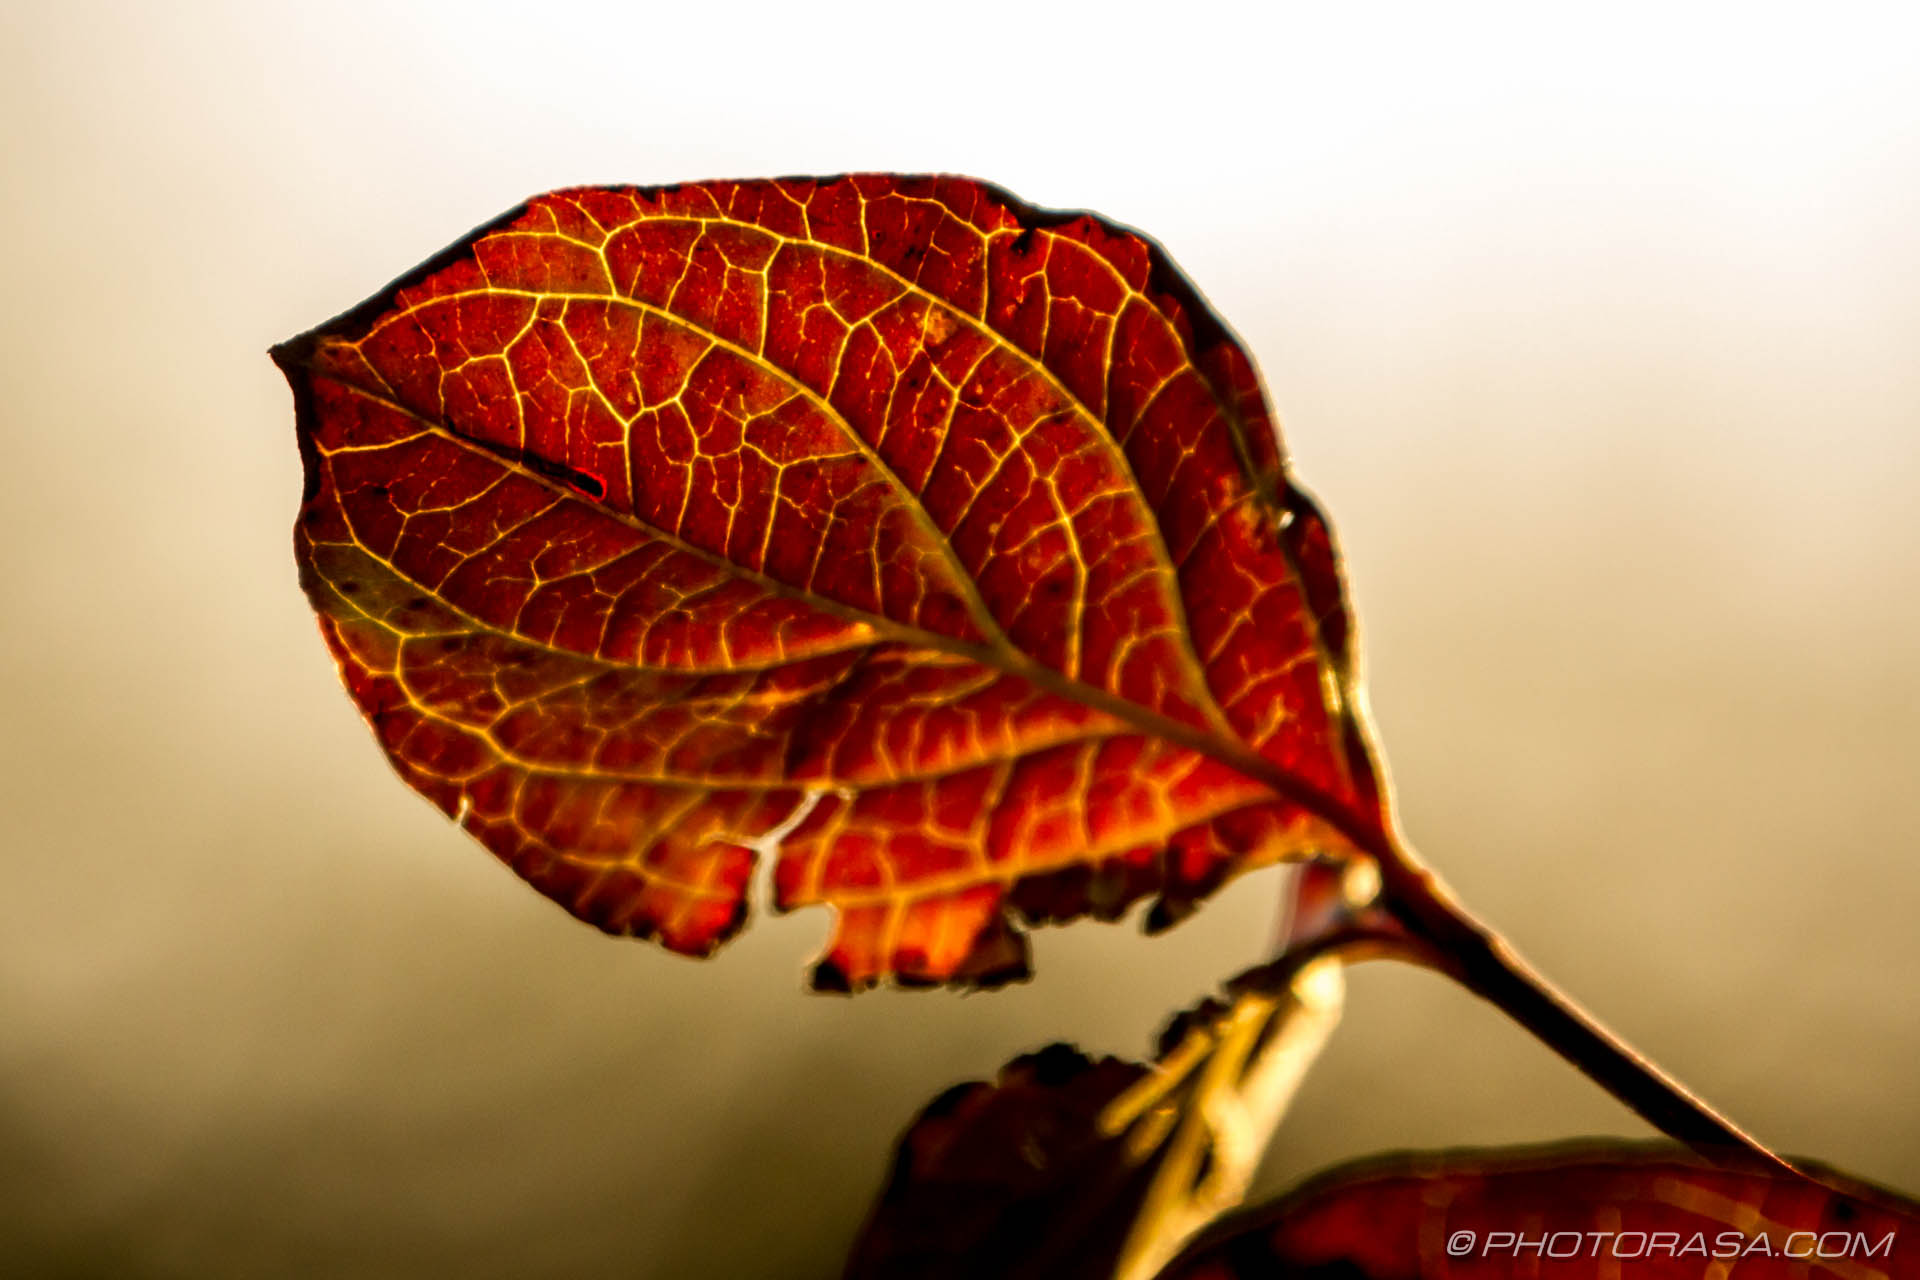 http://photorasa.com/autumn-leaves/red-brown-dogwood-leaf-with-yellow-veins/